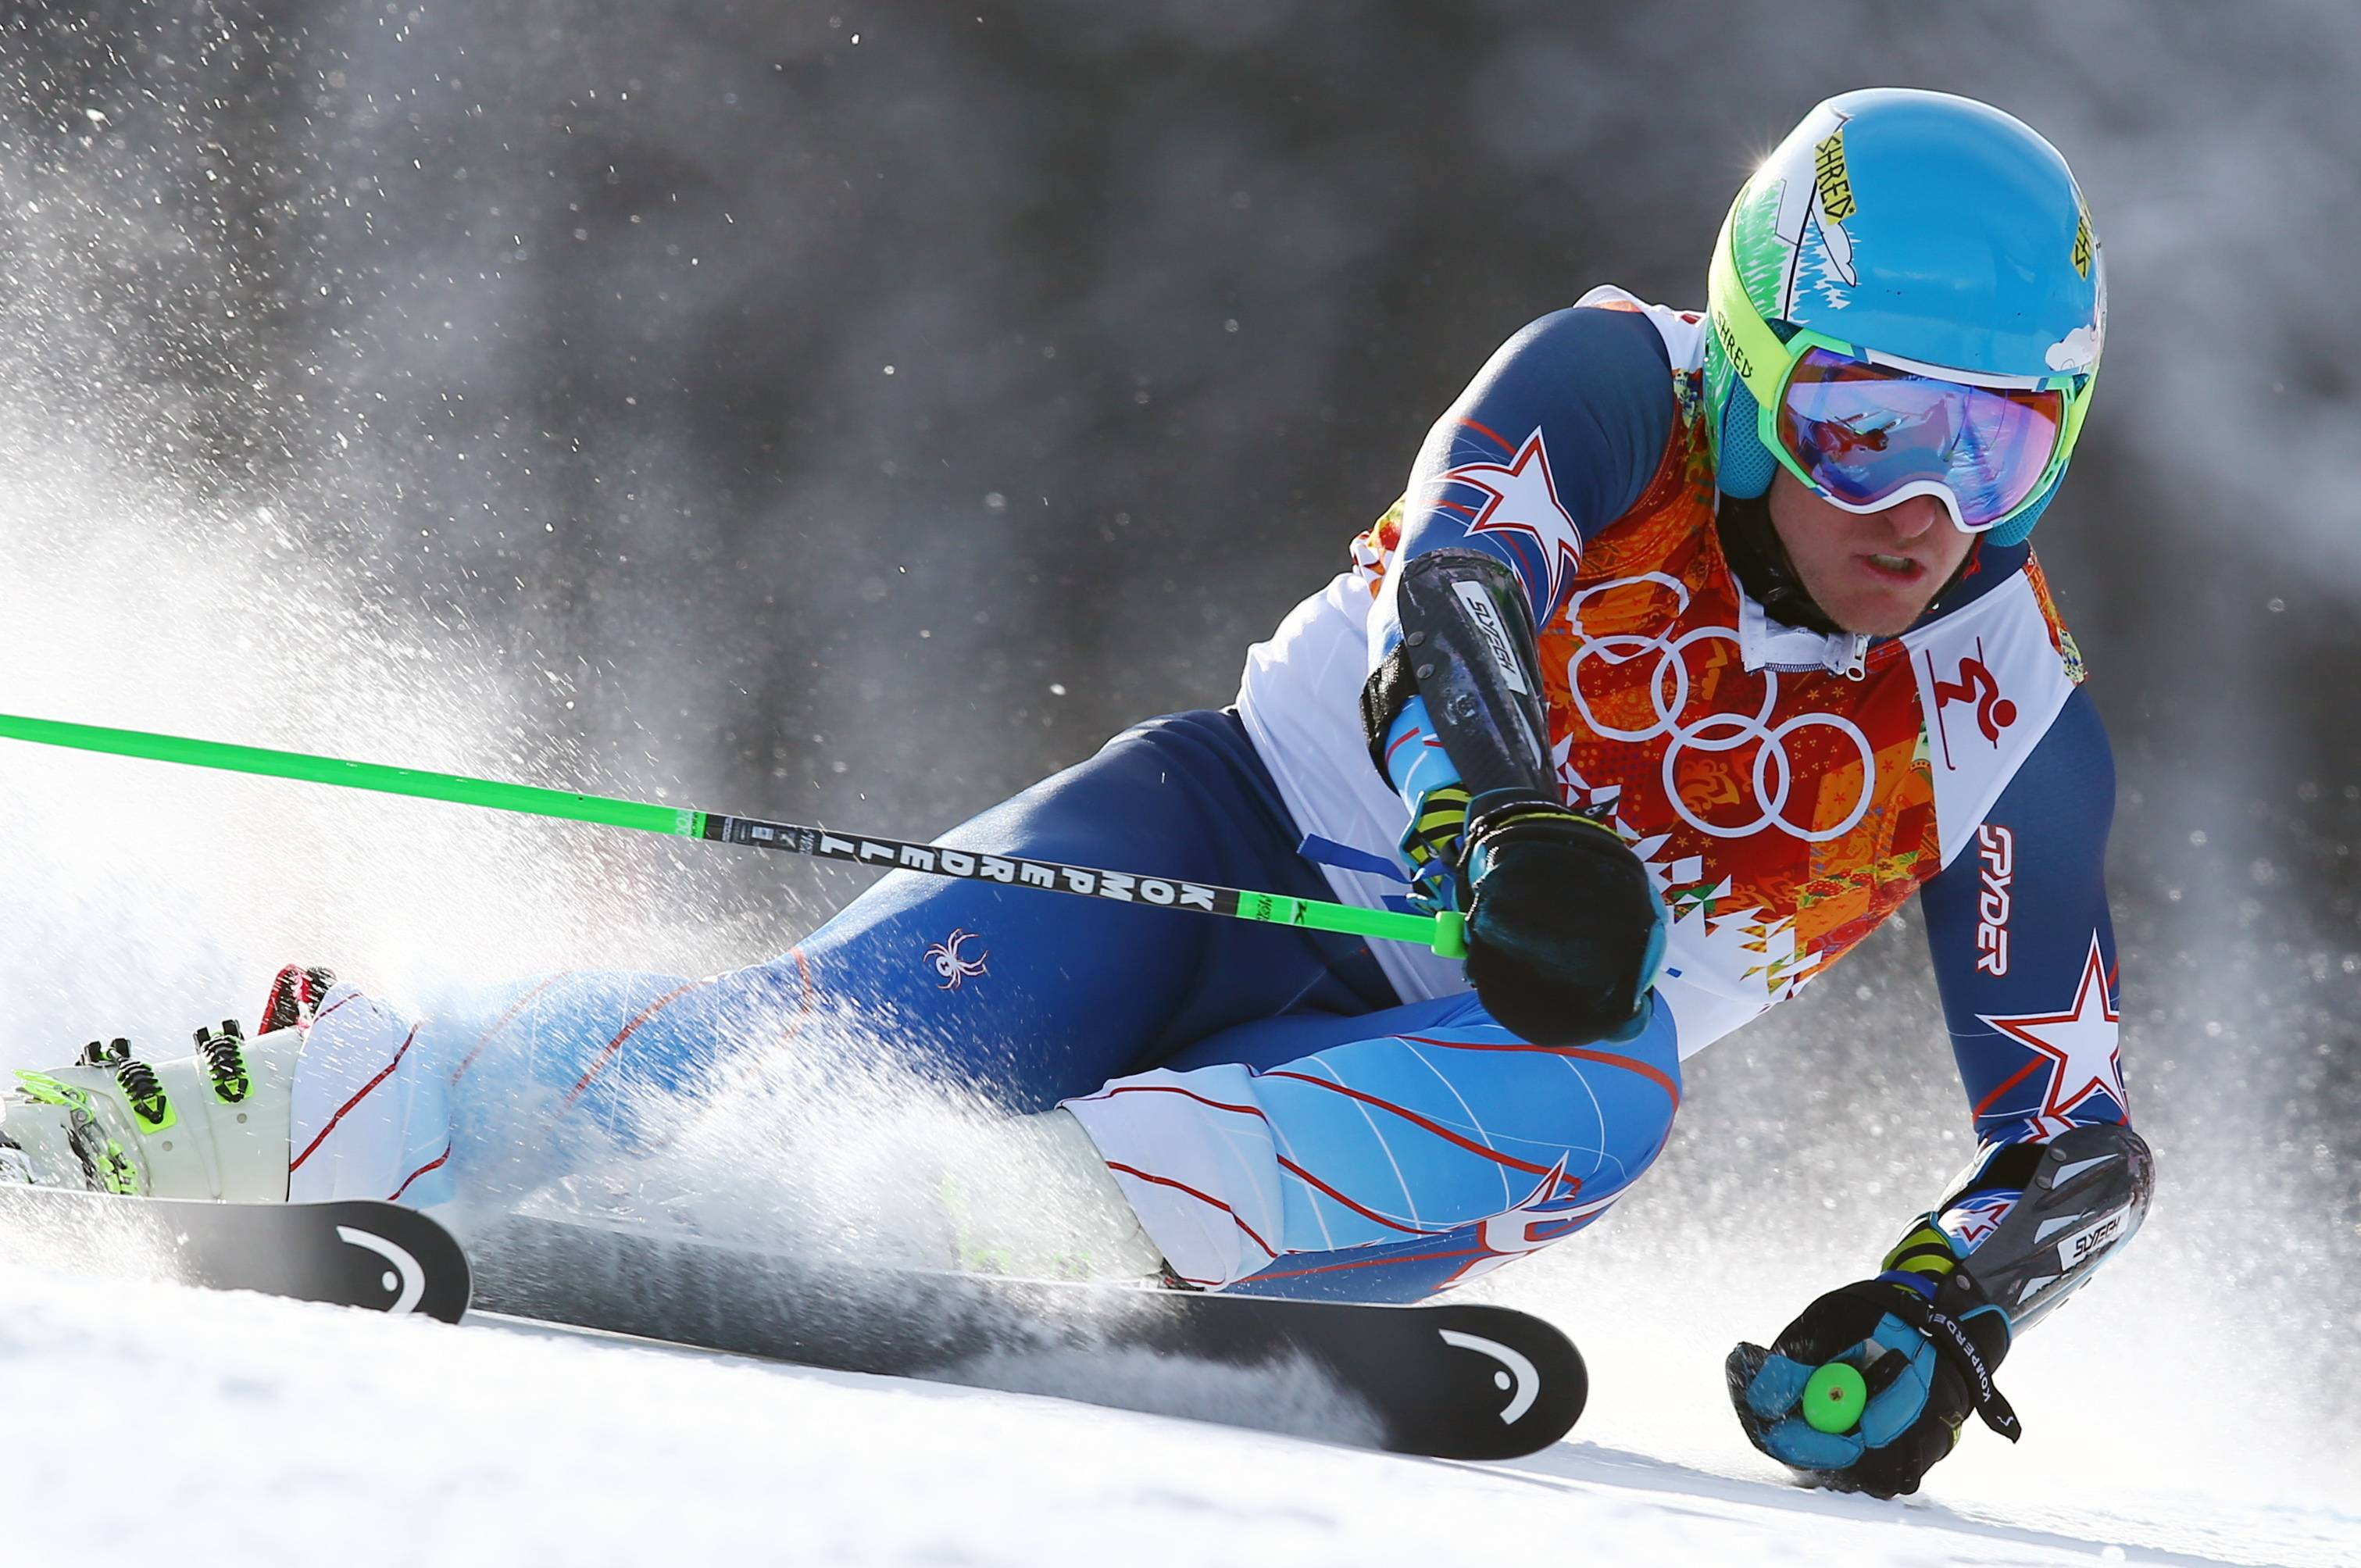 Gold medal winner Ted Ligety of the United States skis Wednesday during the second run of the men's giant slalom at the Sochi 2014 Winter Olympics in Krasnaya Polyana, Russia.